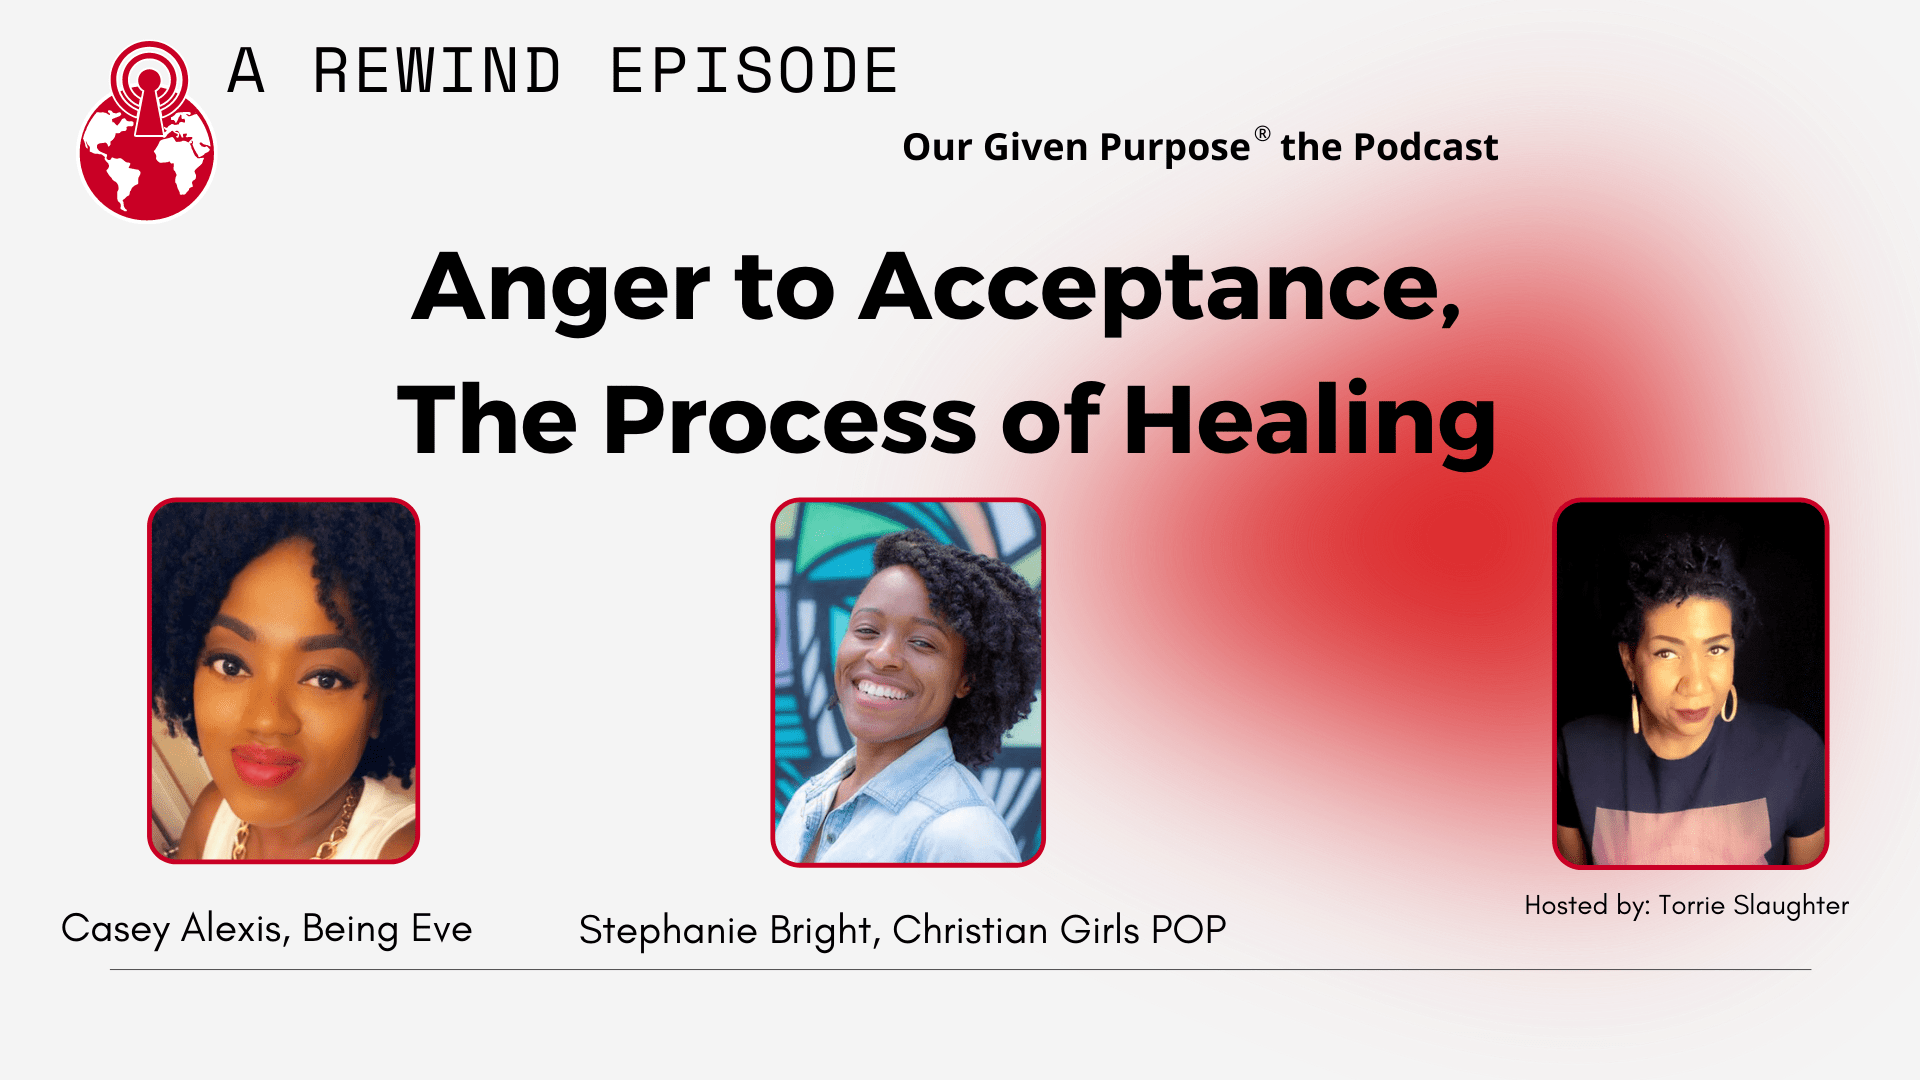 *REWIND* Anger to Acceptance, The Healing Process